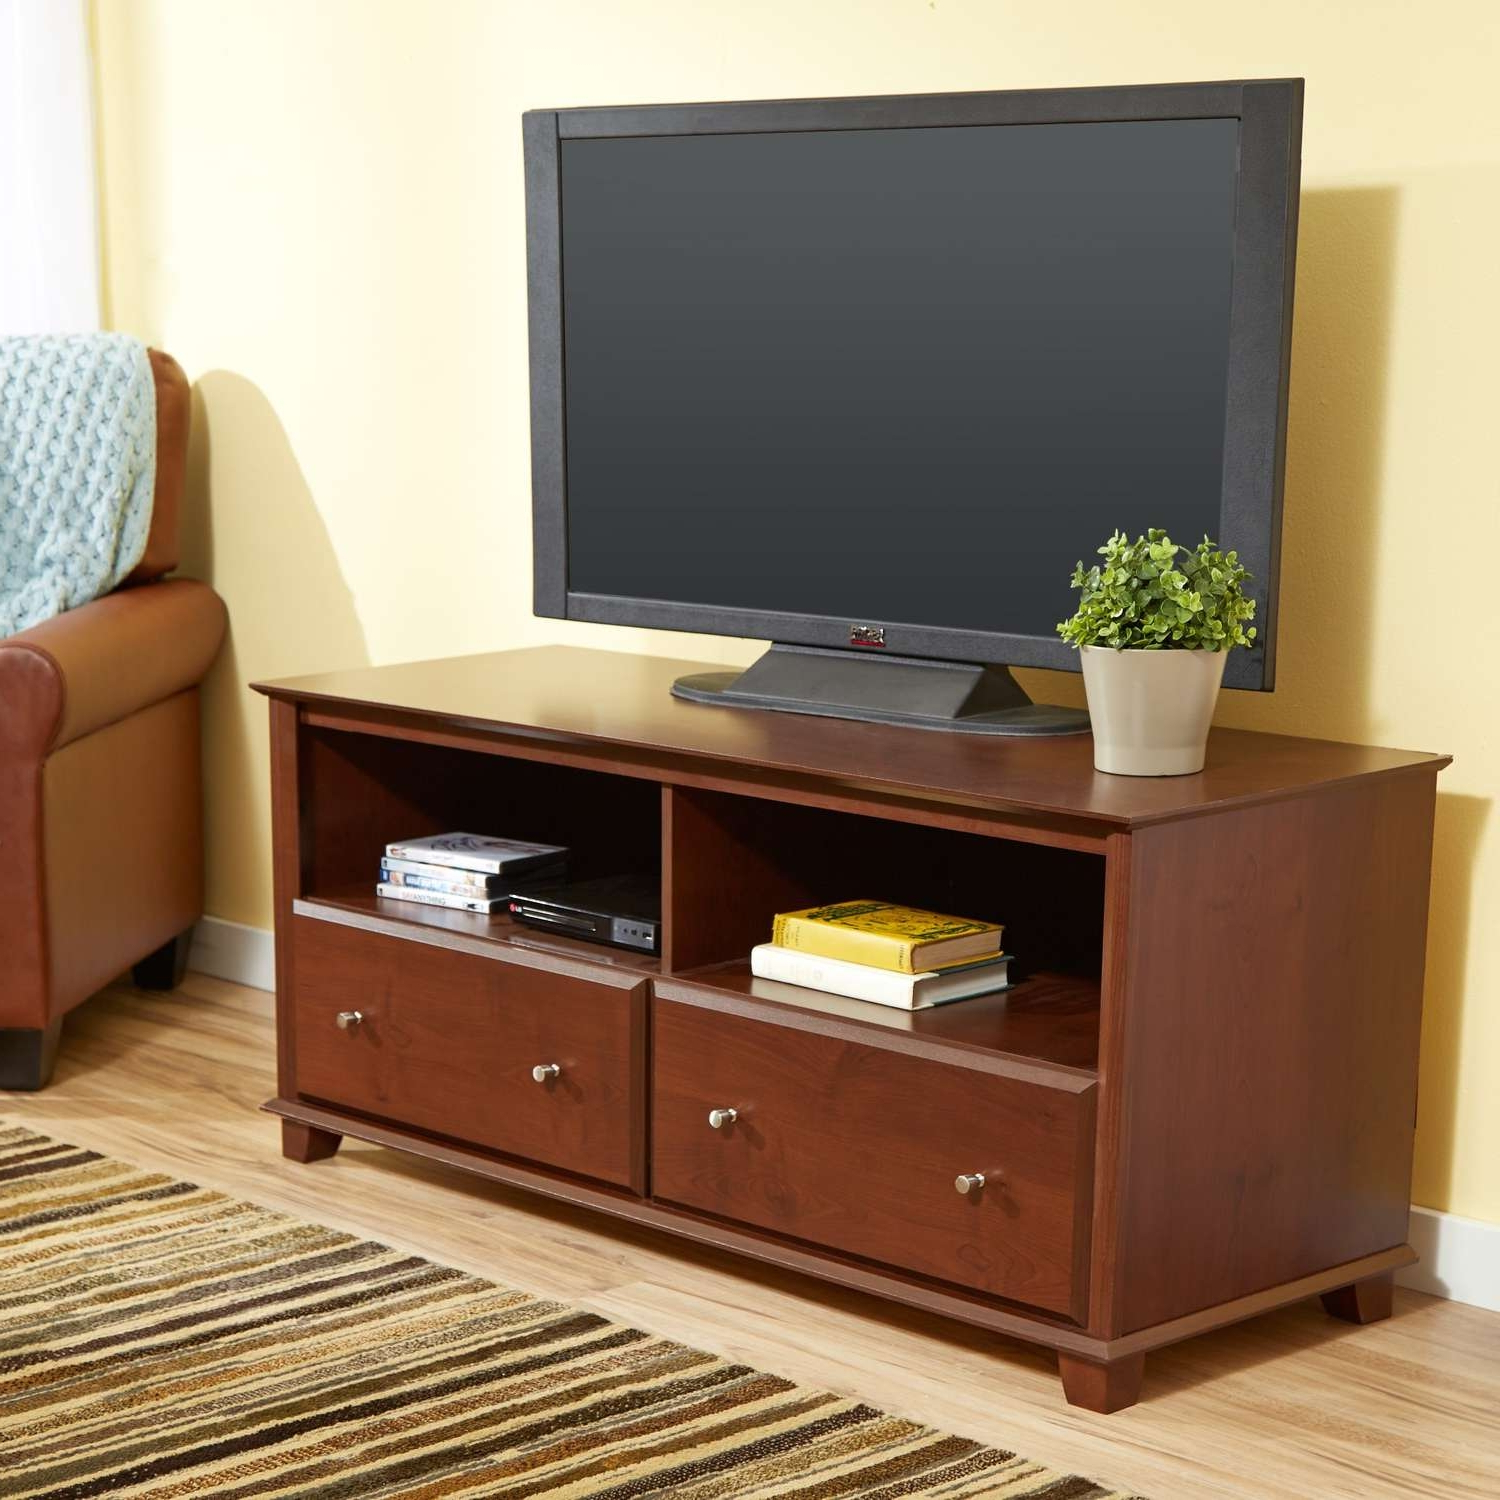 Current Furniture: Winsome Vivacious Mesmerizing Brown Cabinet Apothecary Inside Light Colored Tv Stands (View 4 of 20)